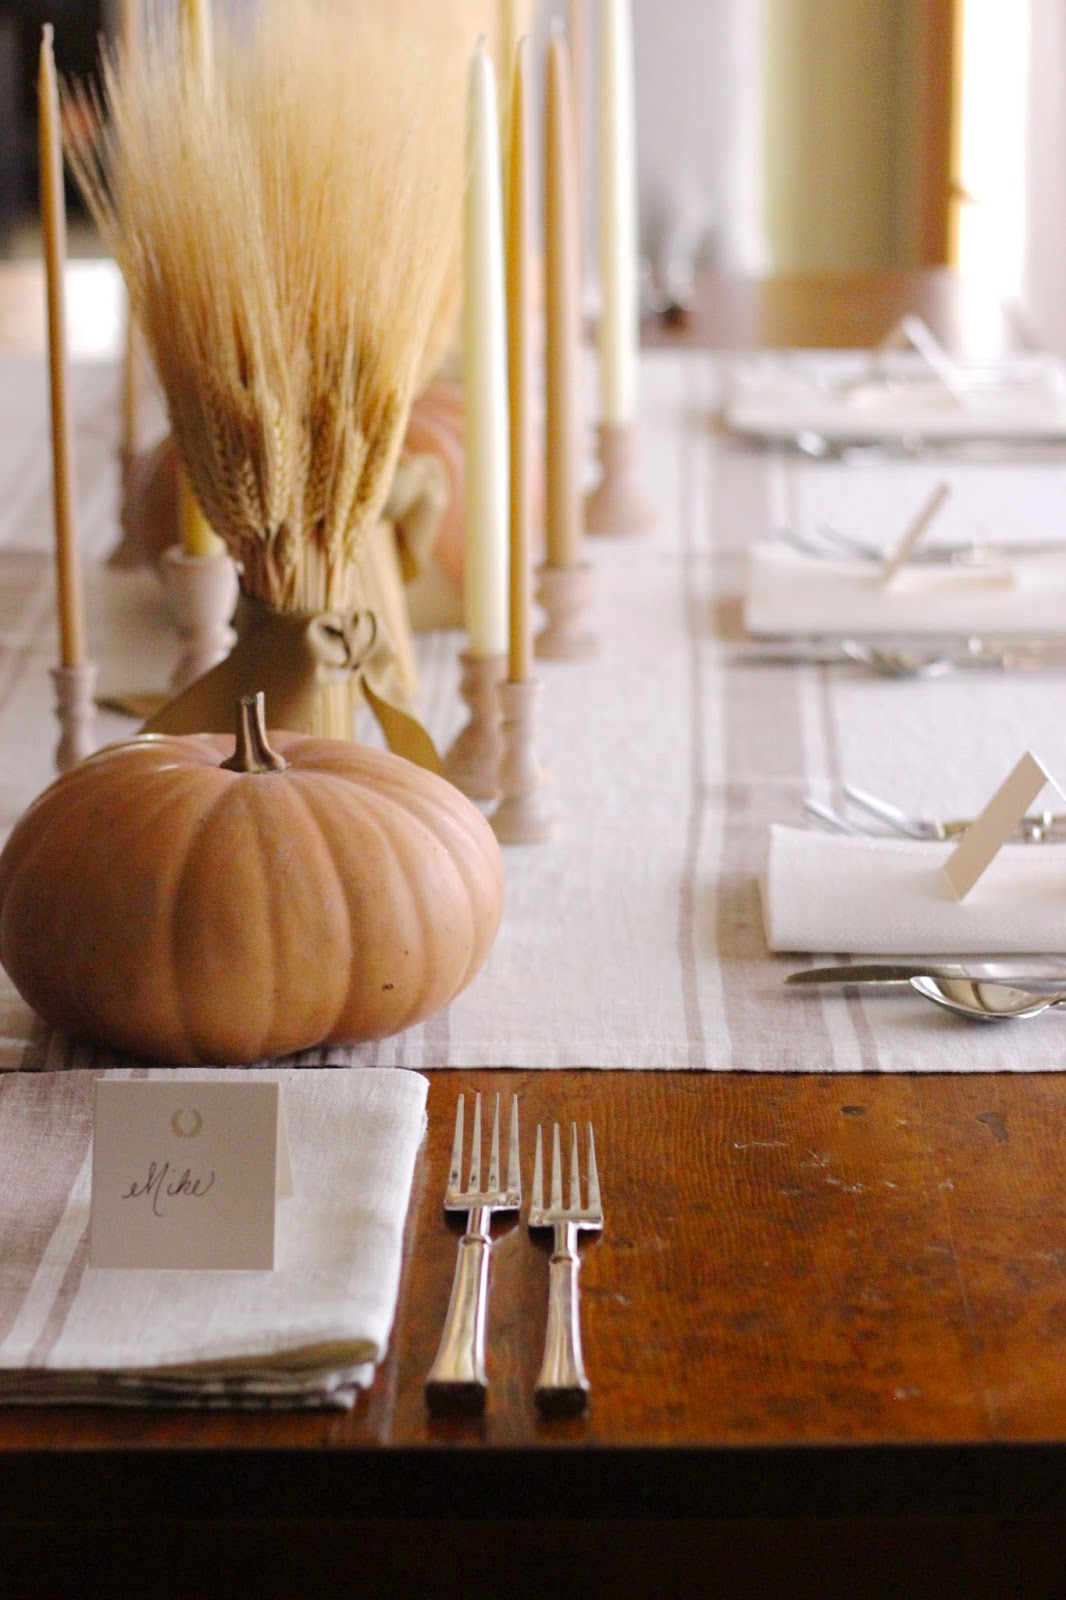 My Tips for Setting a Table | Wheat Harvest Table for Thanksgiving *Winner Announced! & Jenny Steffens Hobick: My Tips for Setting a Table | Wheat Harvest ...